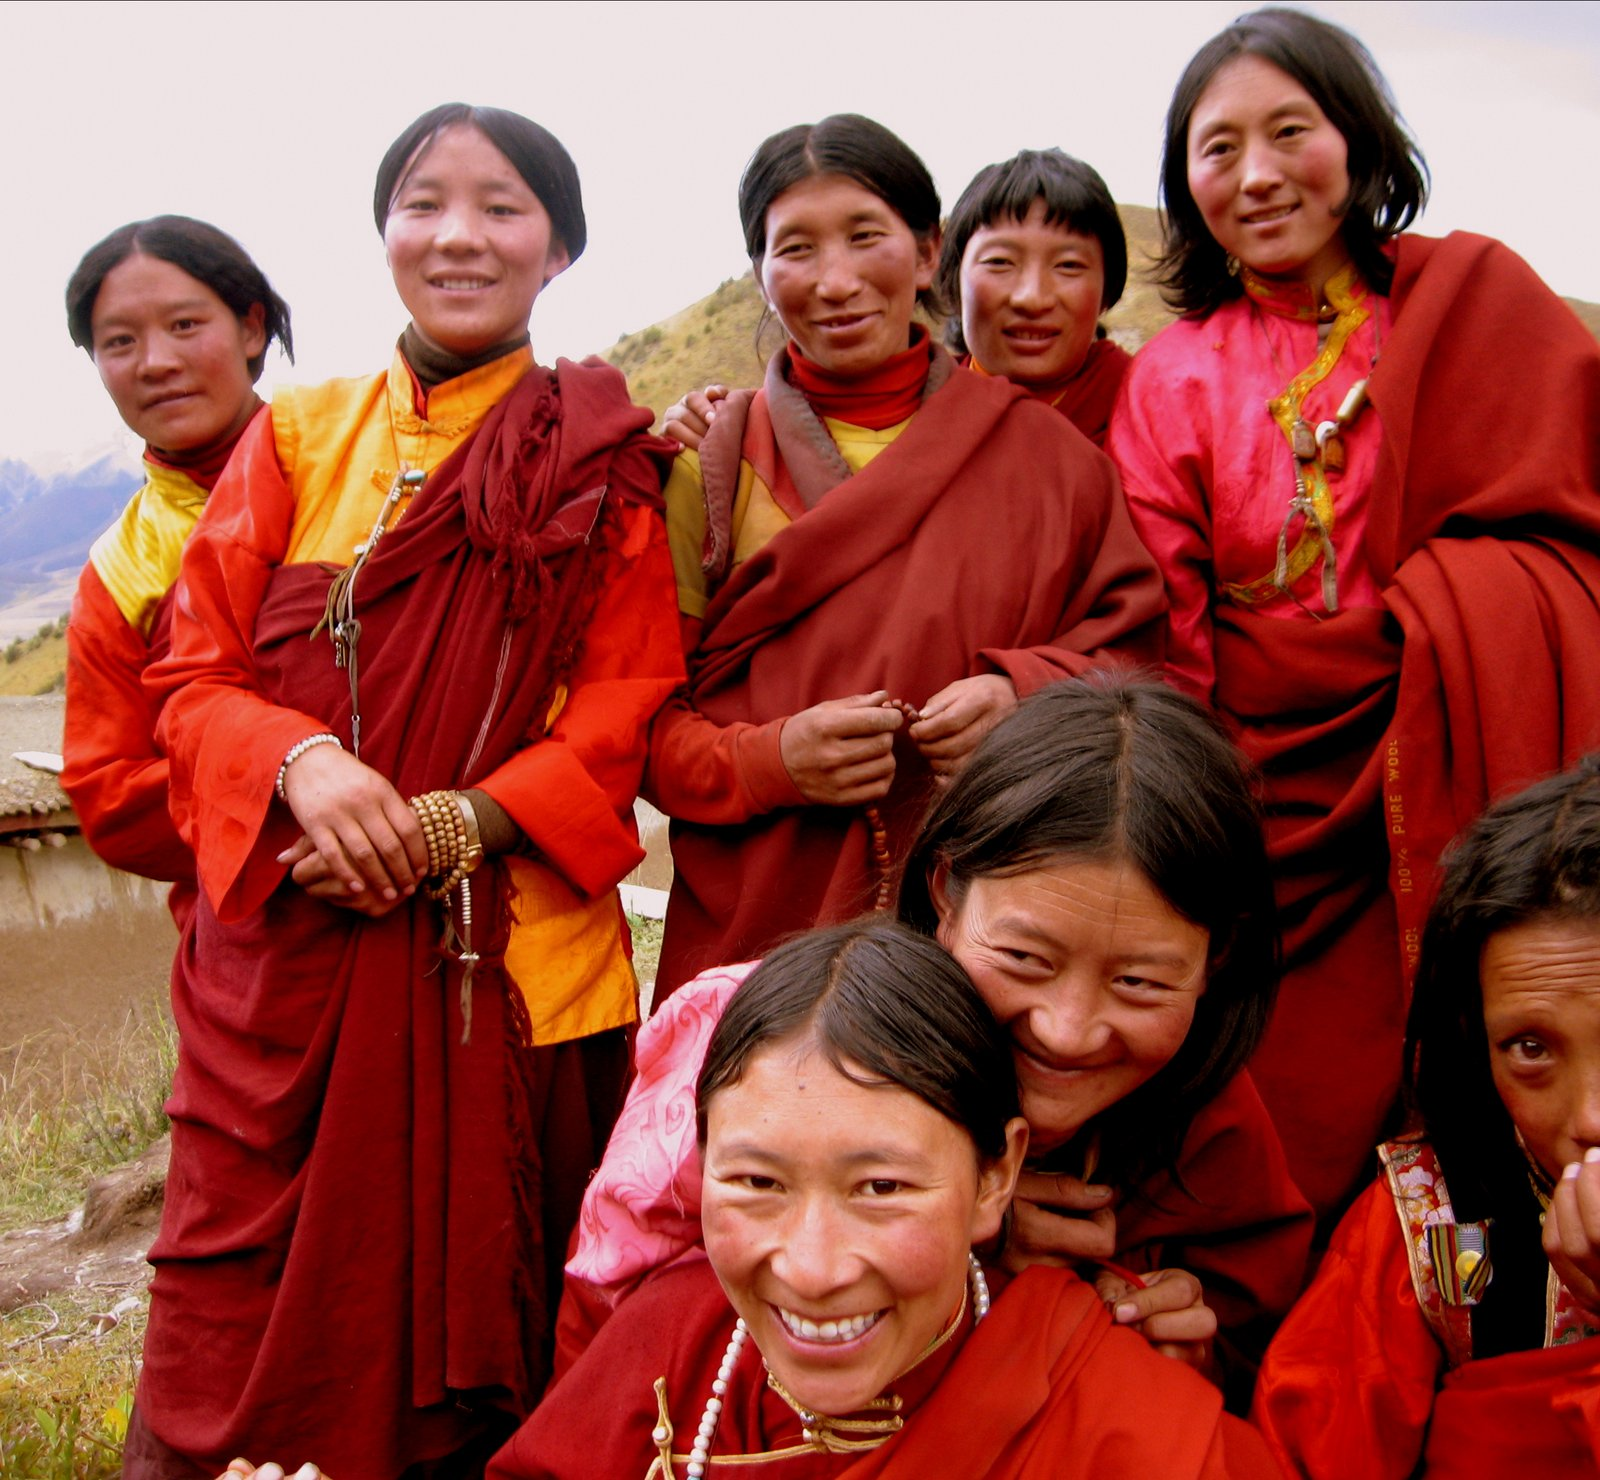 conflict of desires female tibetan leaders and gender advocacy